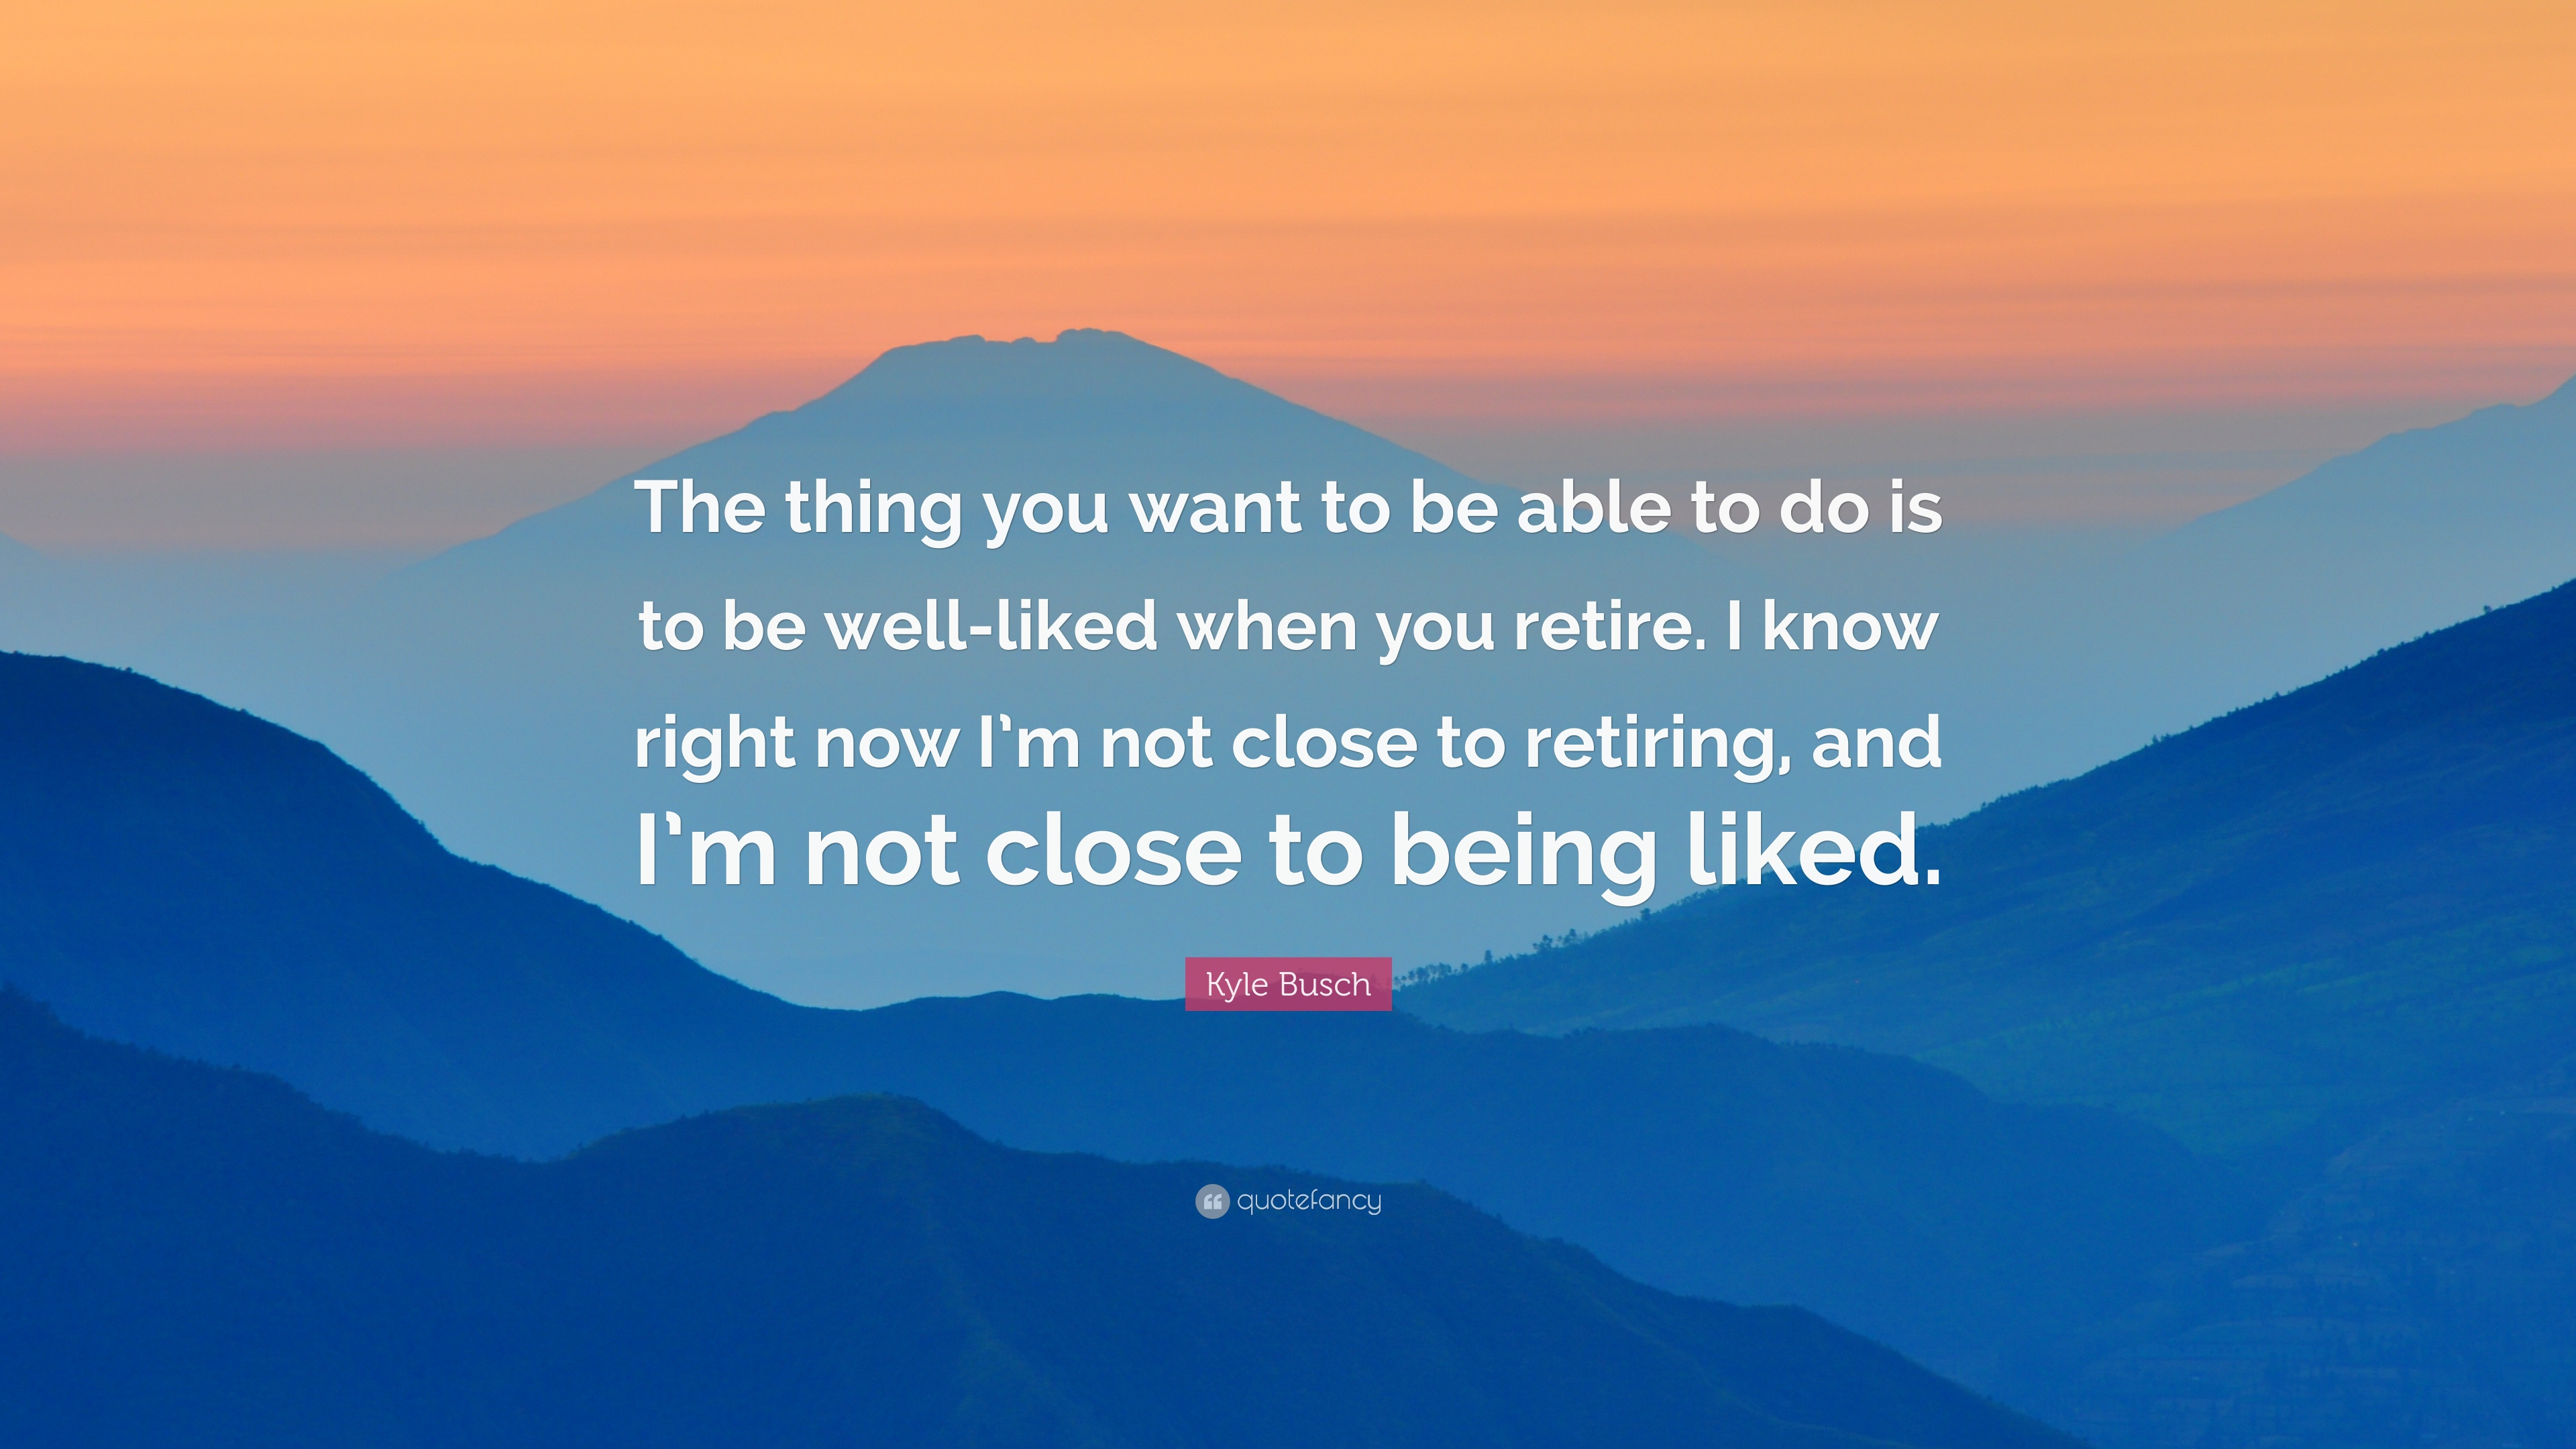 Kyle Busch Quote The Thing You Want To Be Able To Do Is To Be Well